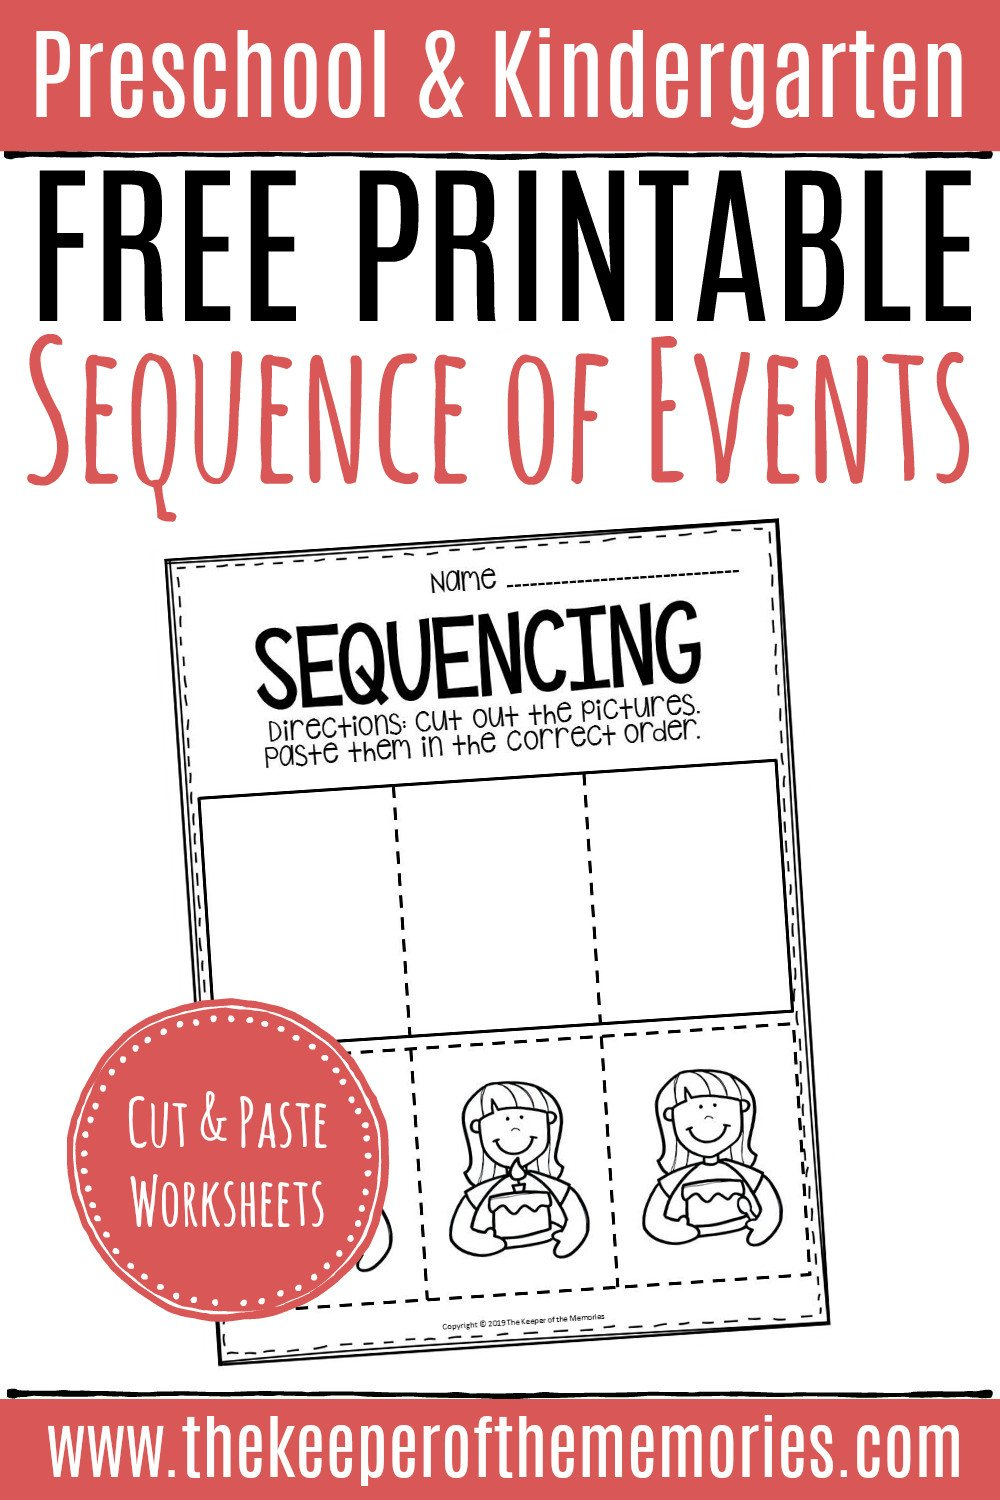 Cut and Paste Kindergarten Worksheets Free Printable Sequence Of events Worksheets